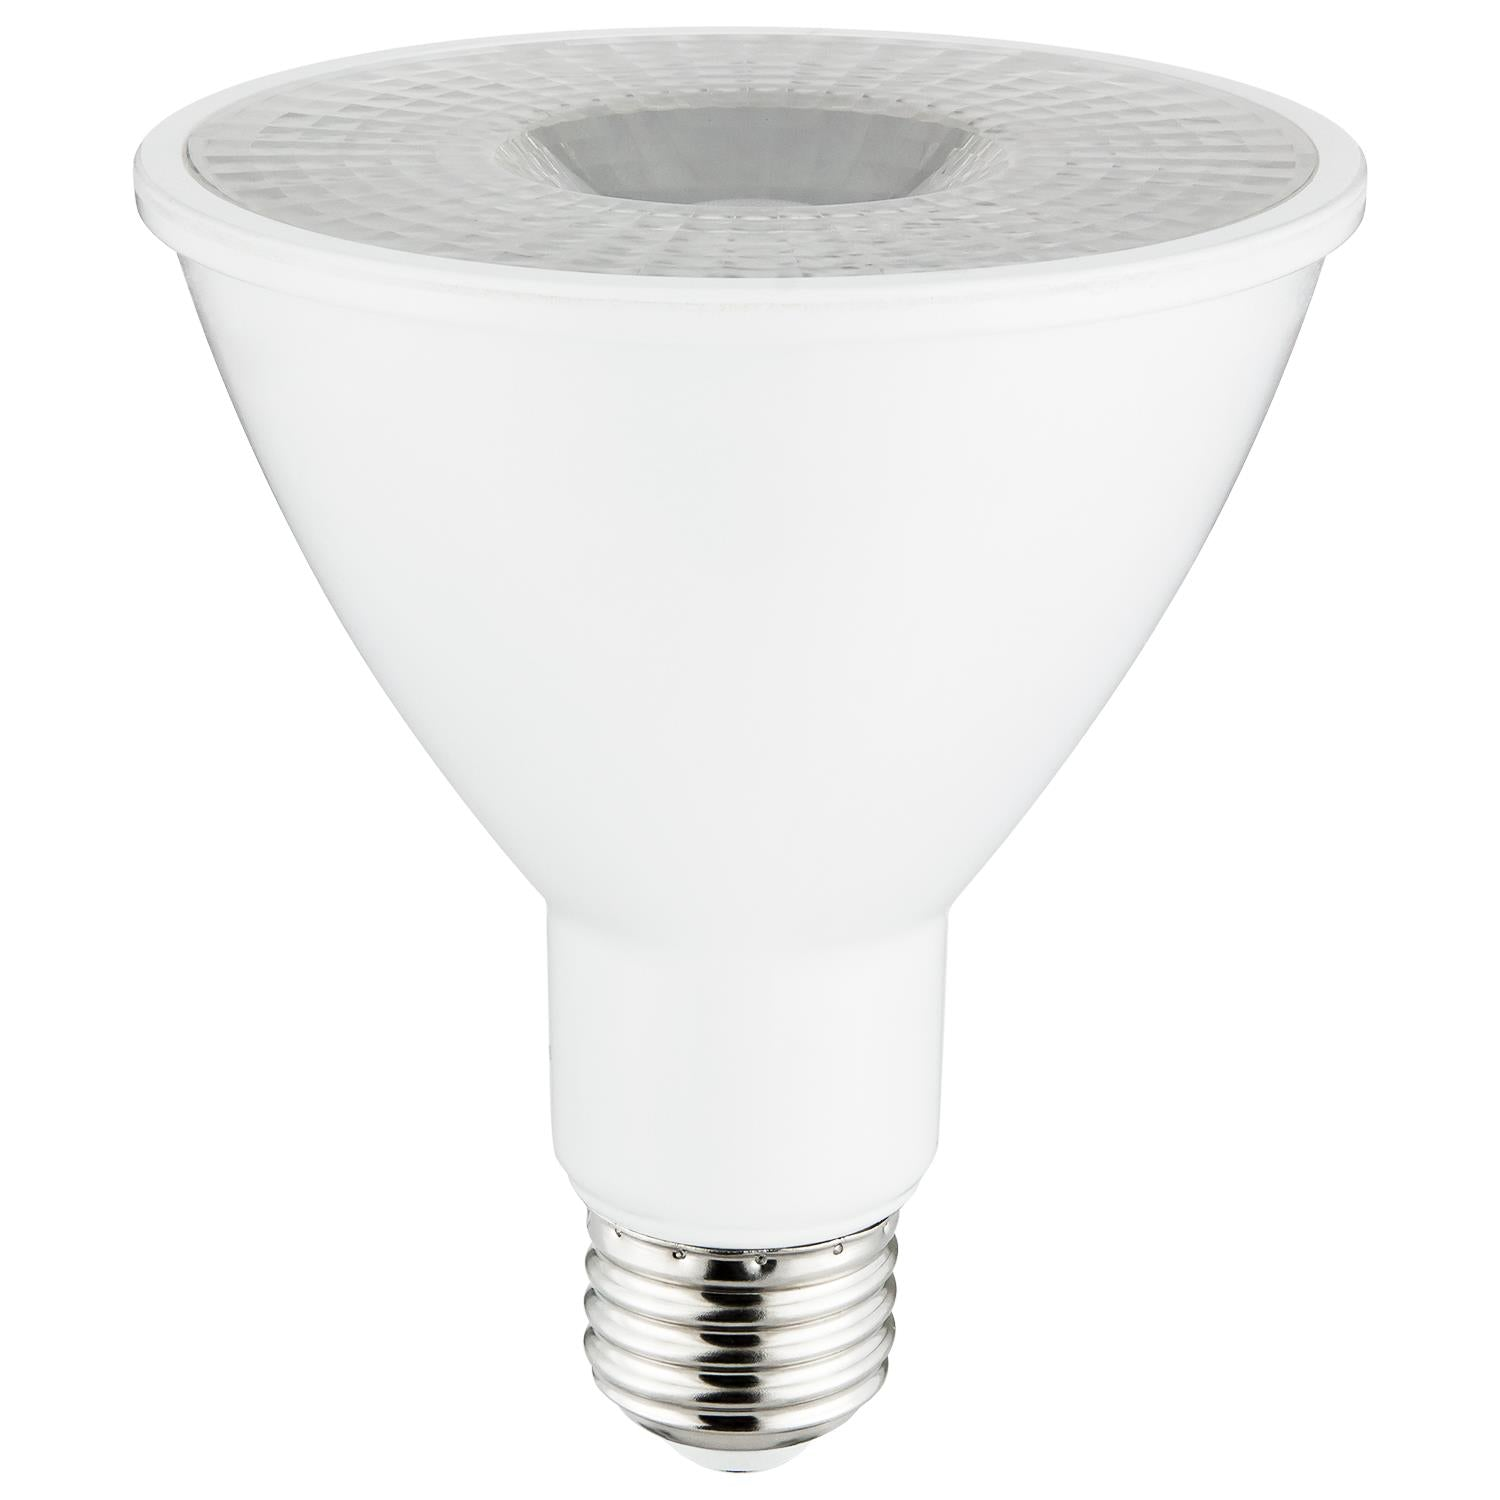 SUNLITE 10w LED Par30 Long Neck Flood 35 E26 Medium Base 5000K Super White Lamp